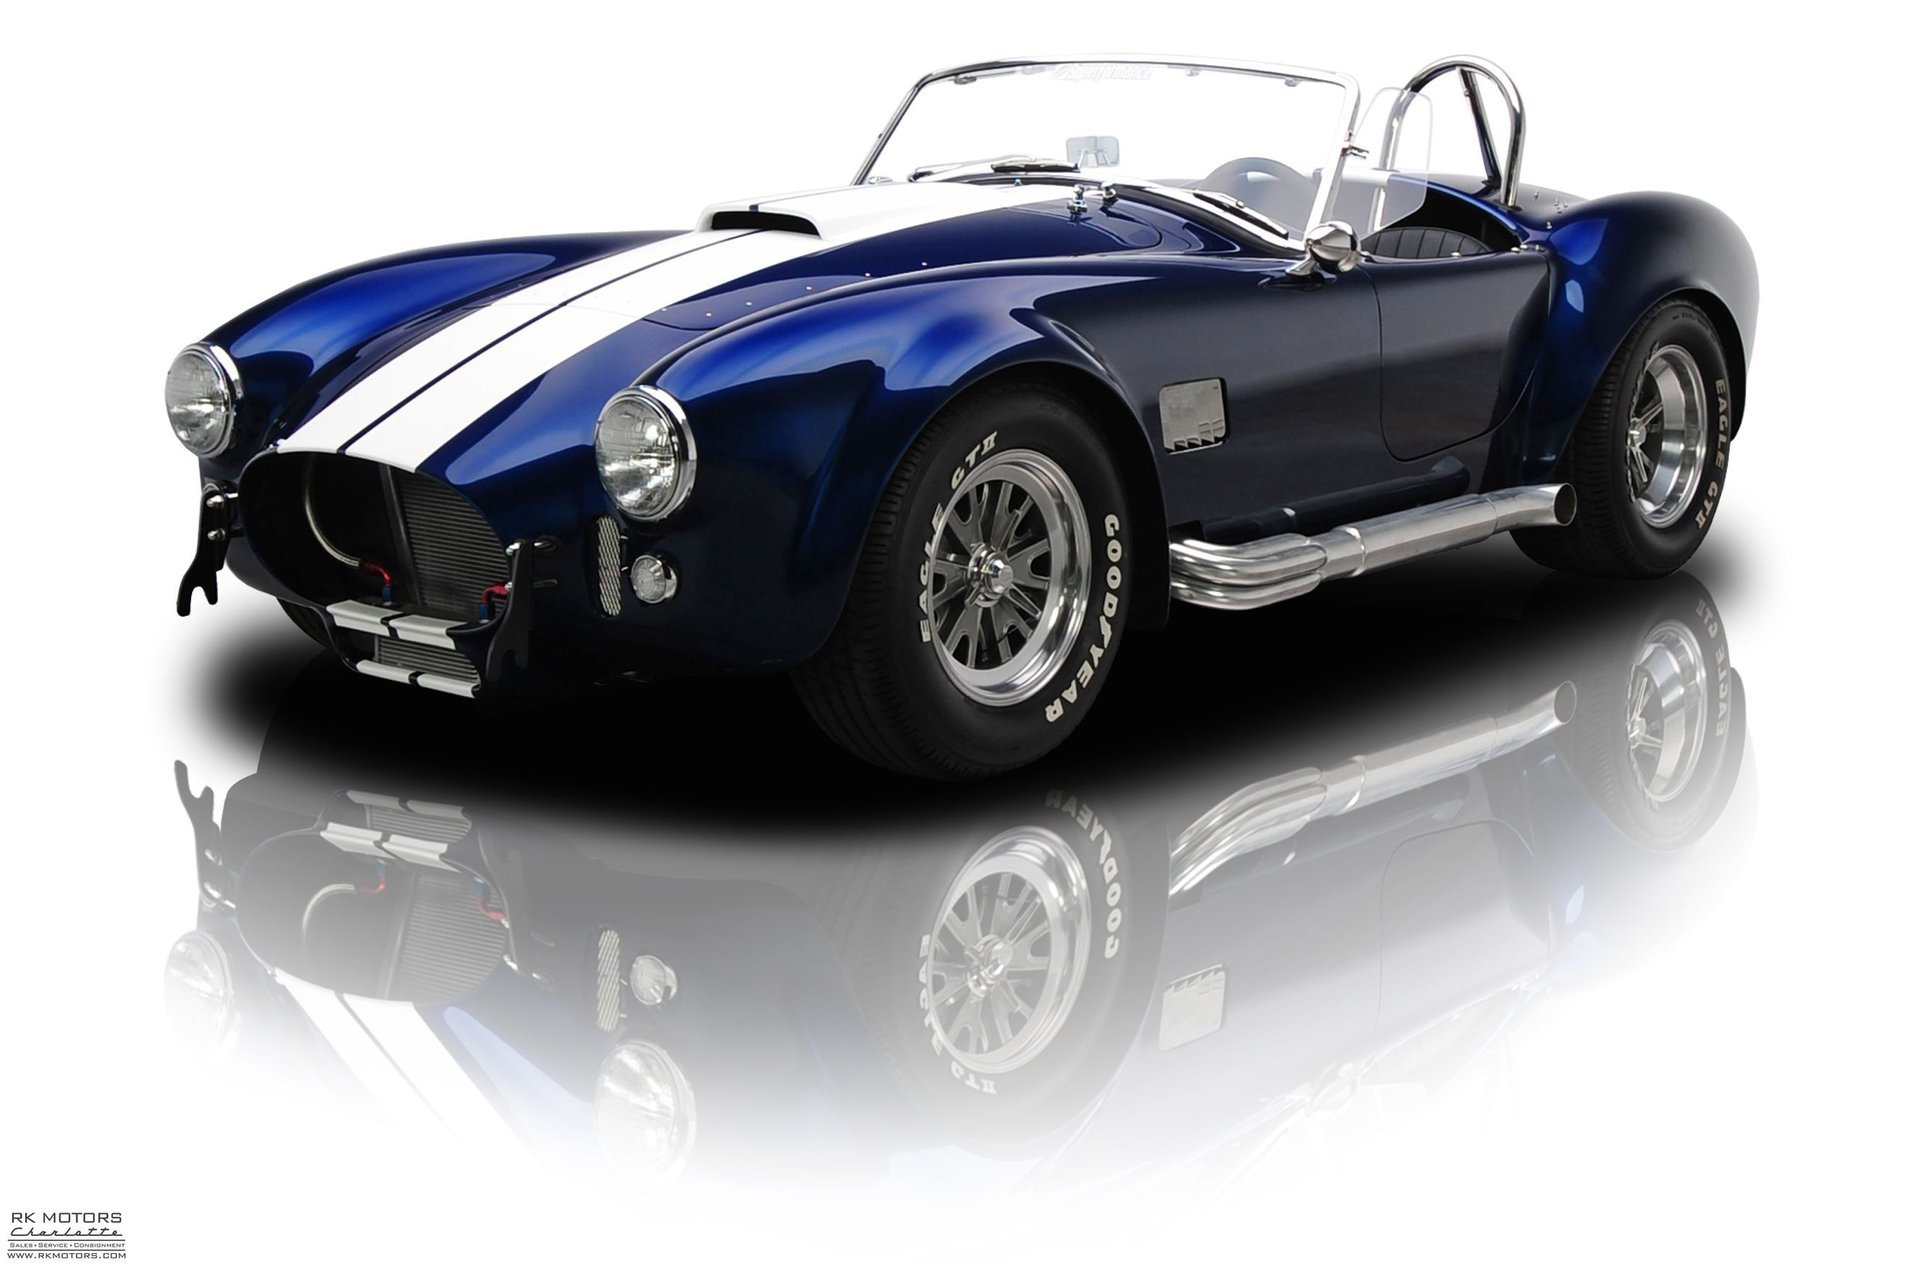 133089 1965 Shelby Cobra RK Motors Classic Cars for Sale